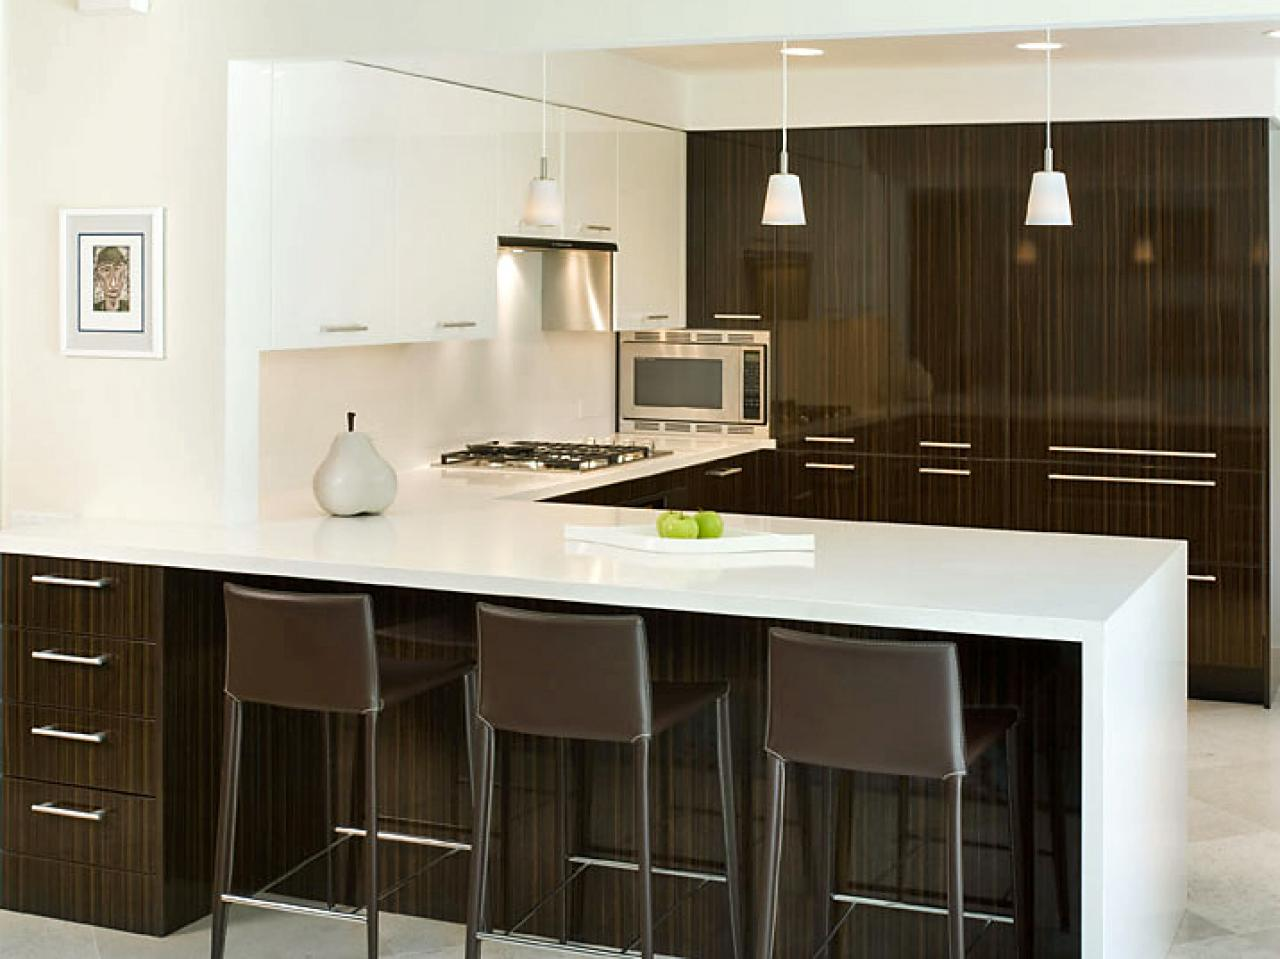 Peninsula kitchen design pictures ideas tips from hgtv for Modern cupboard designs